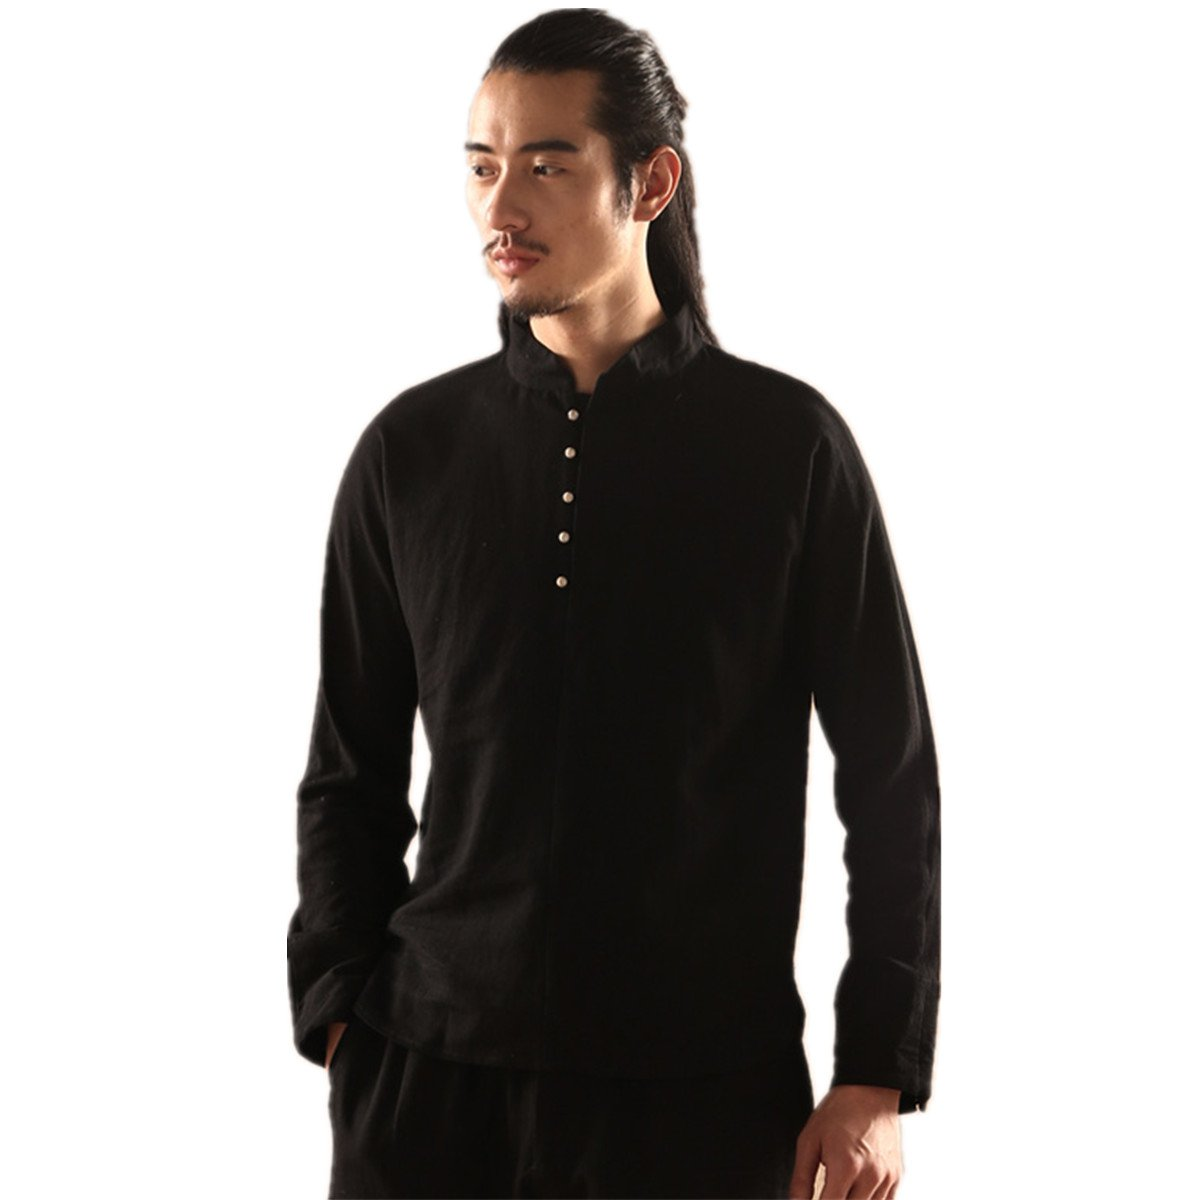 WEISAN Mens Chinese Traditional Tang Suit Cotton Linen Spring Autumn Kung Fu Costume